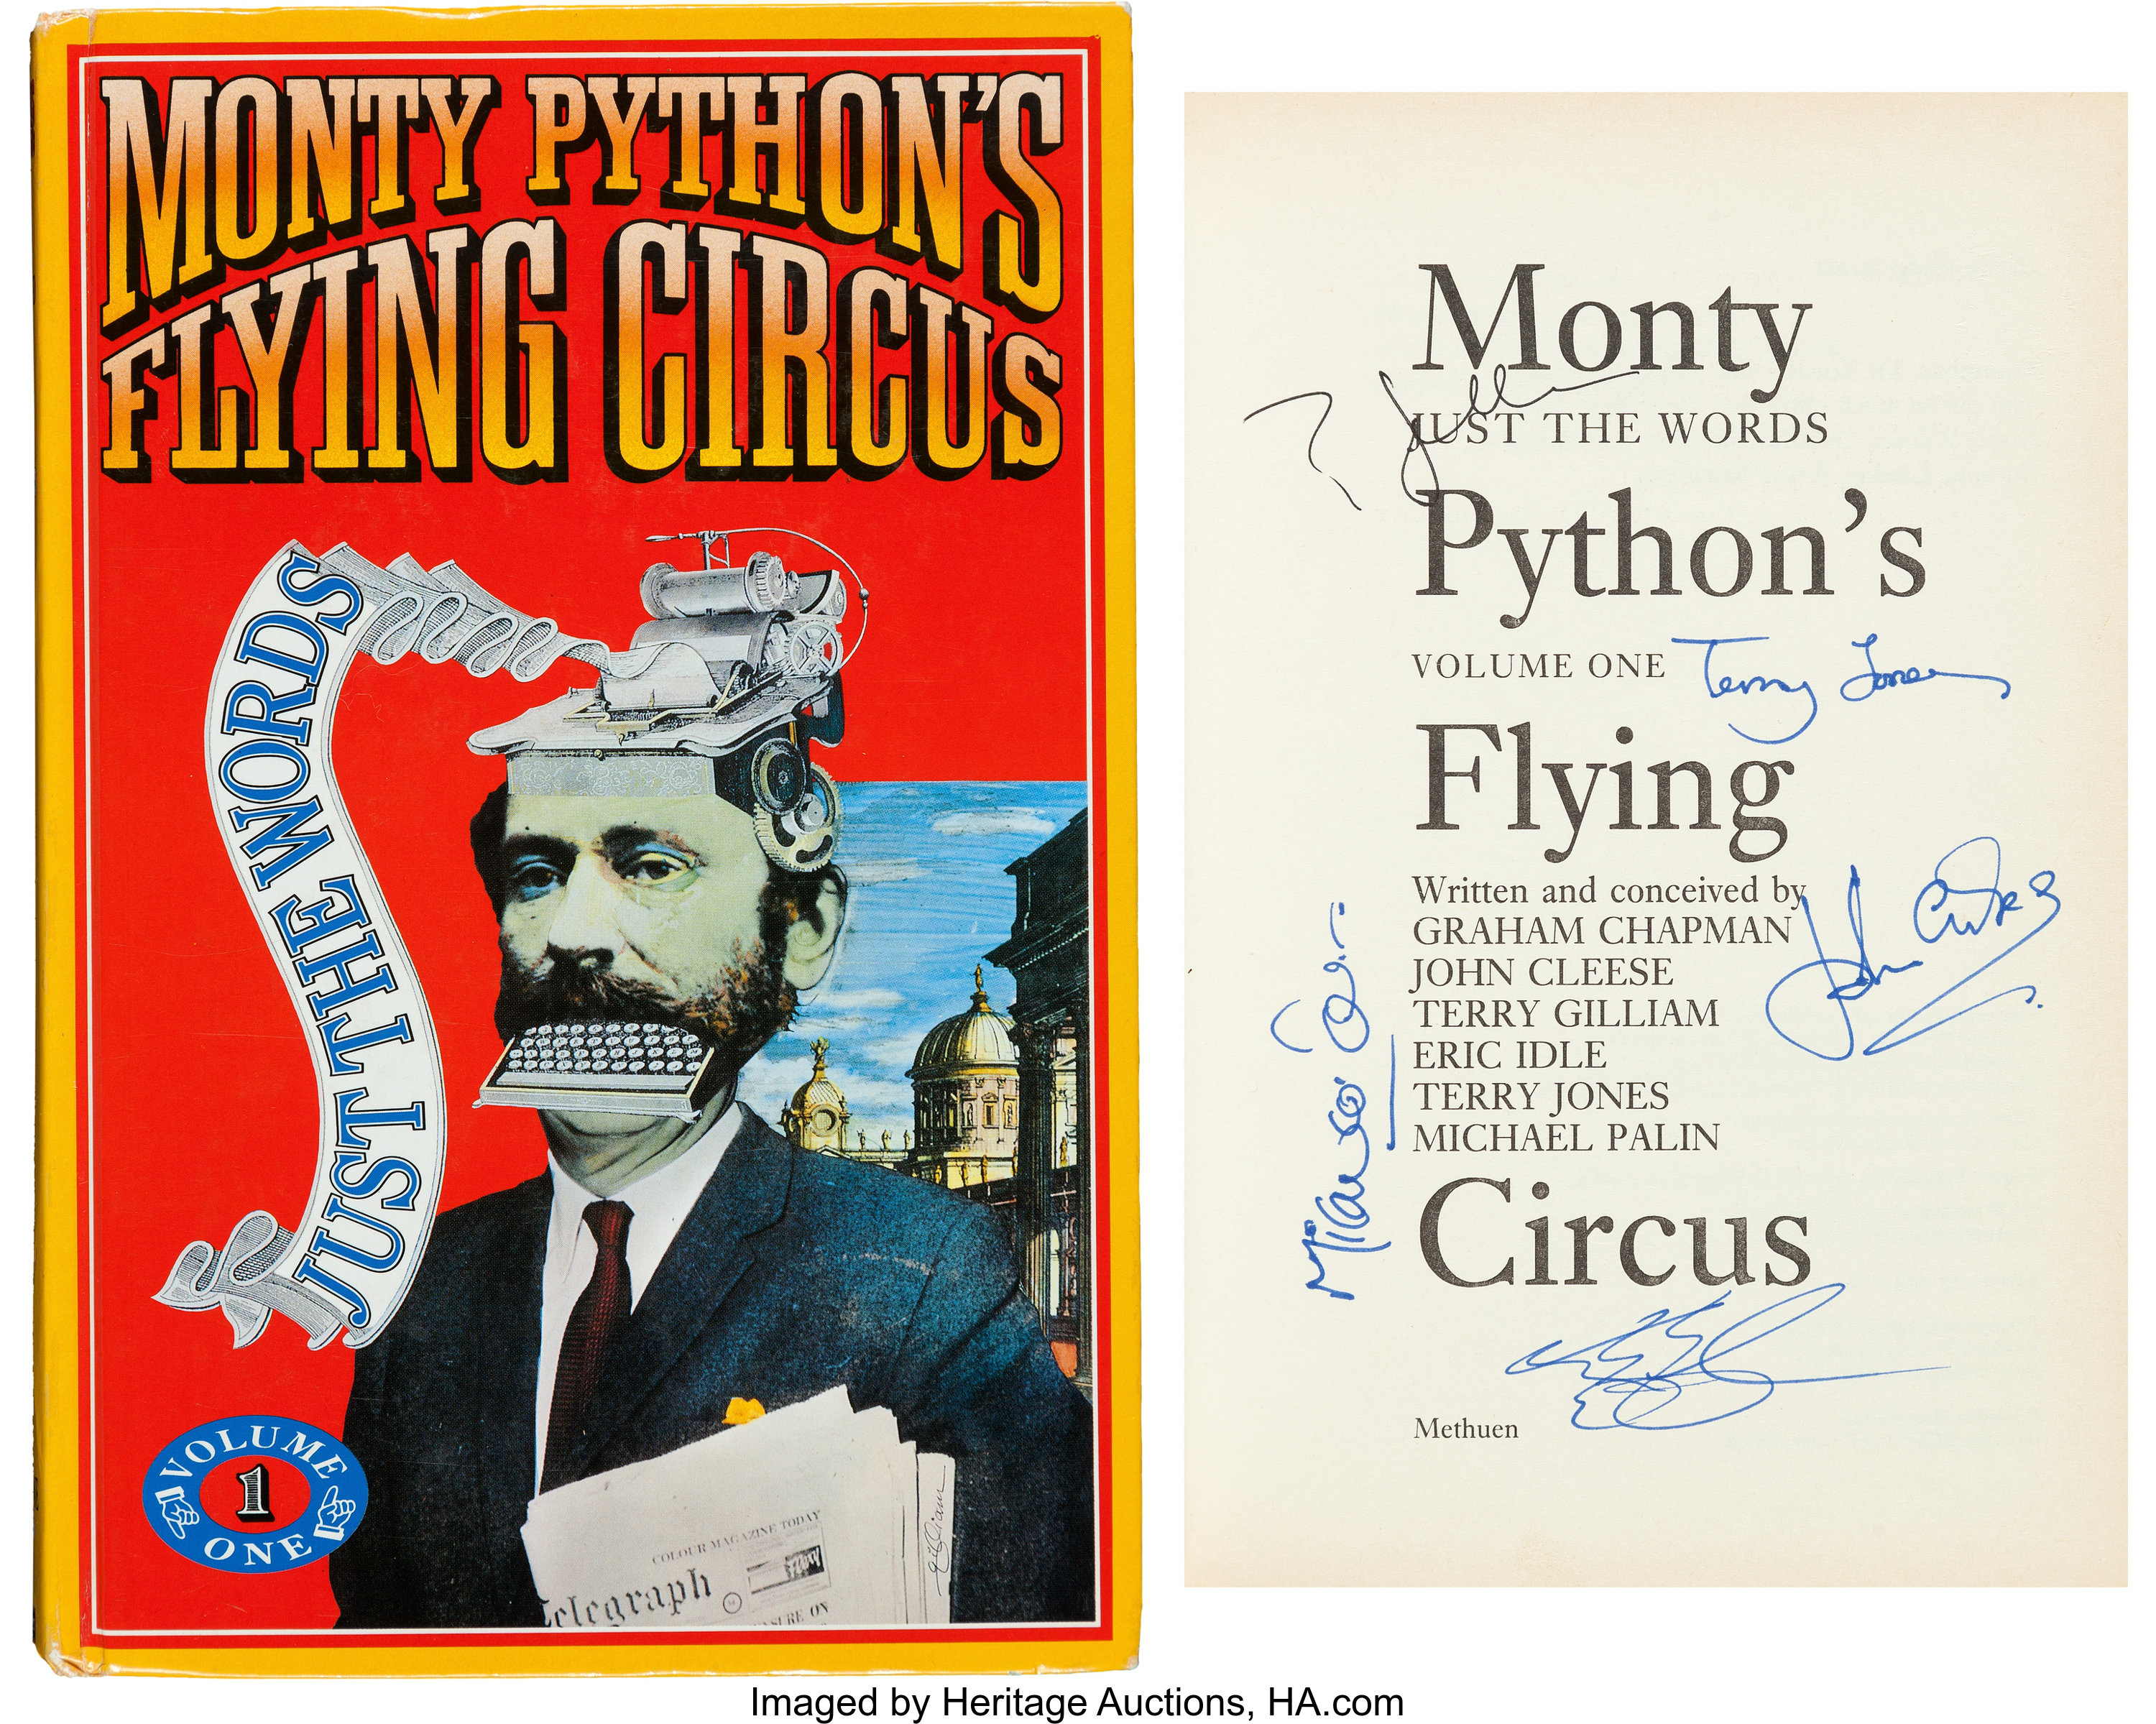 A Monty Python Cast Signed Copy Of Monty Python S Flying Circus Lot 89695 Heritage Auctions